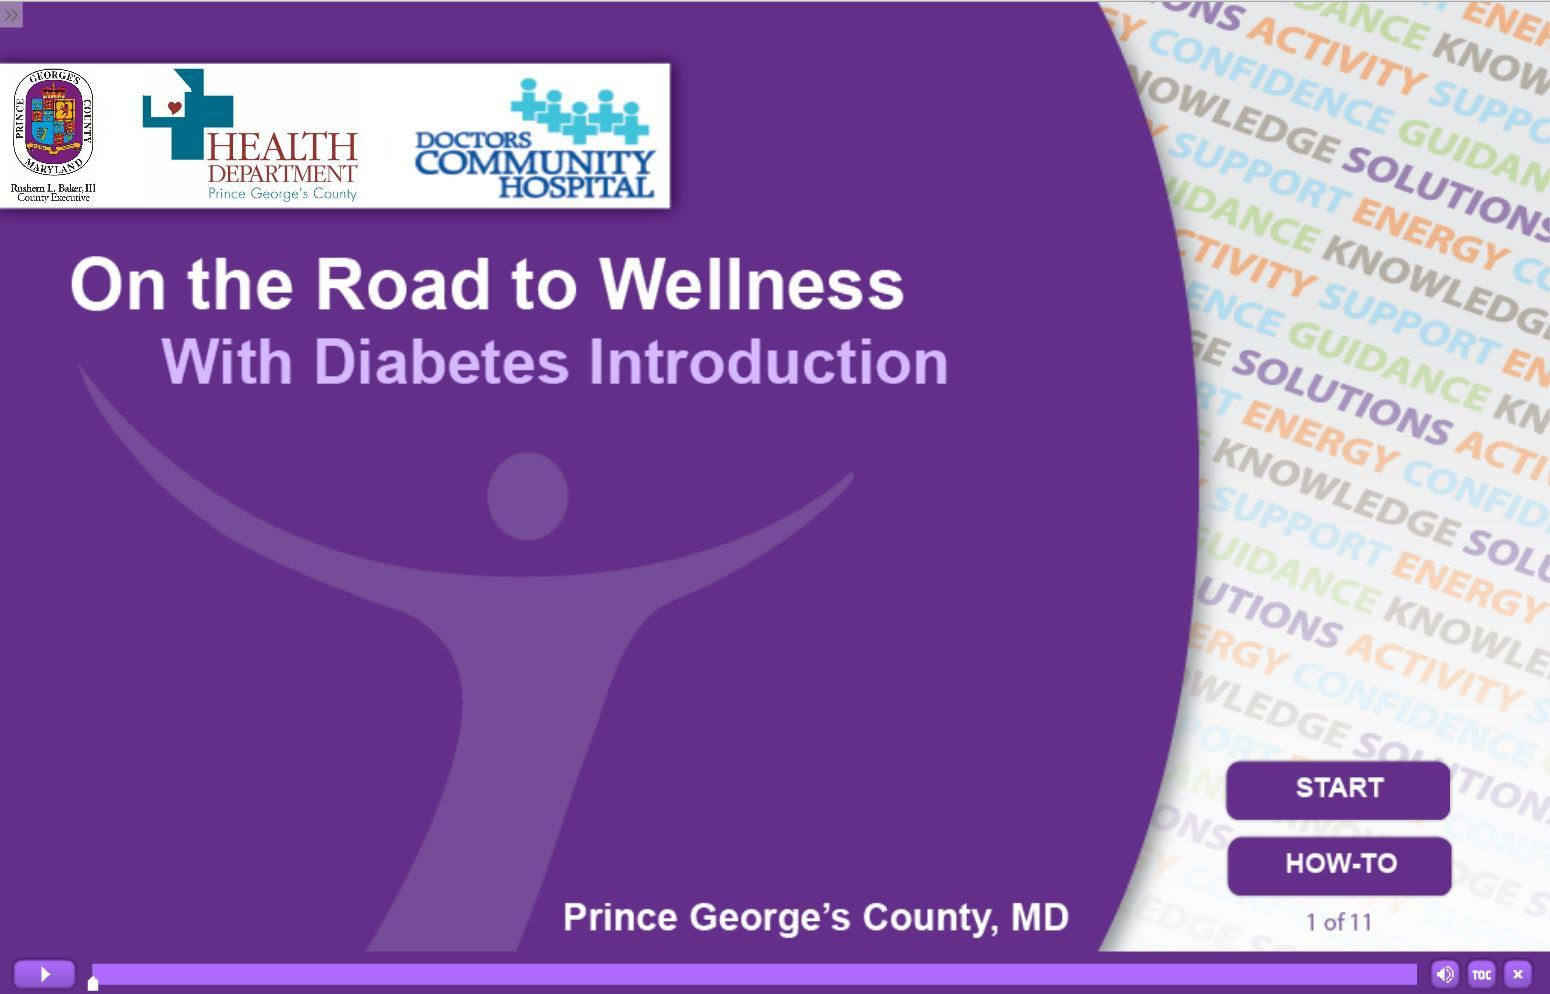 On the Road to Wellness Video Introduction